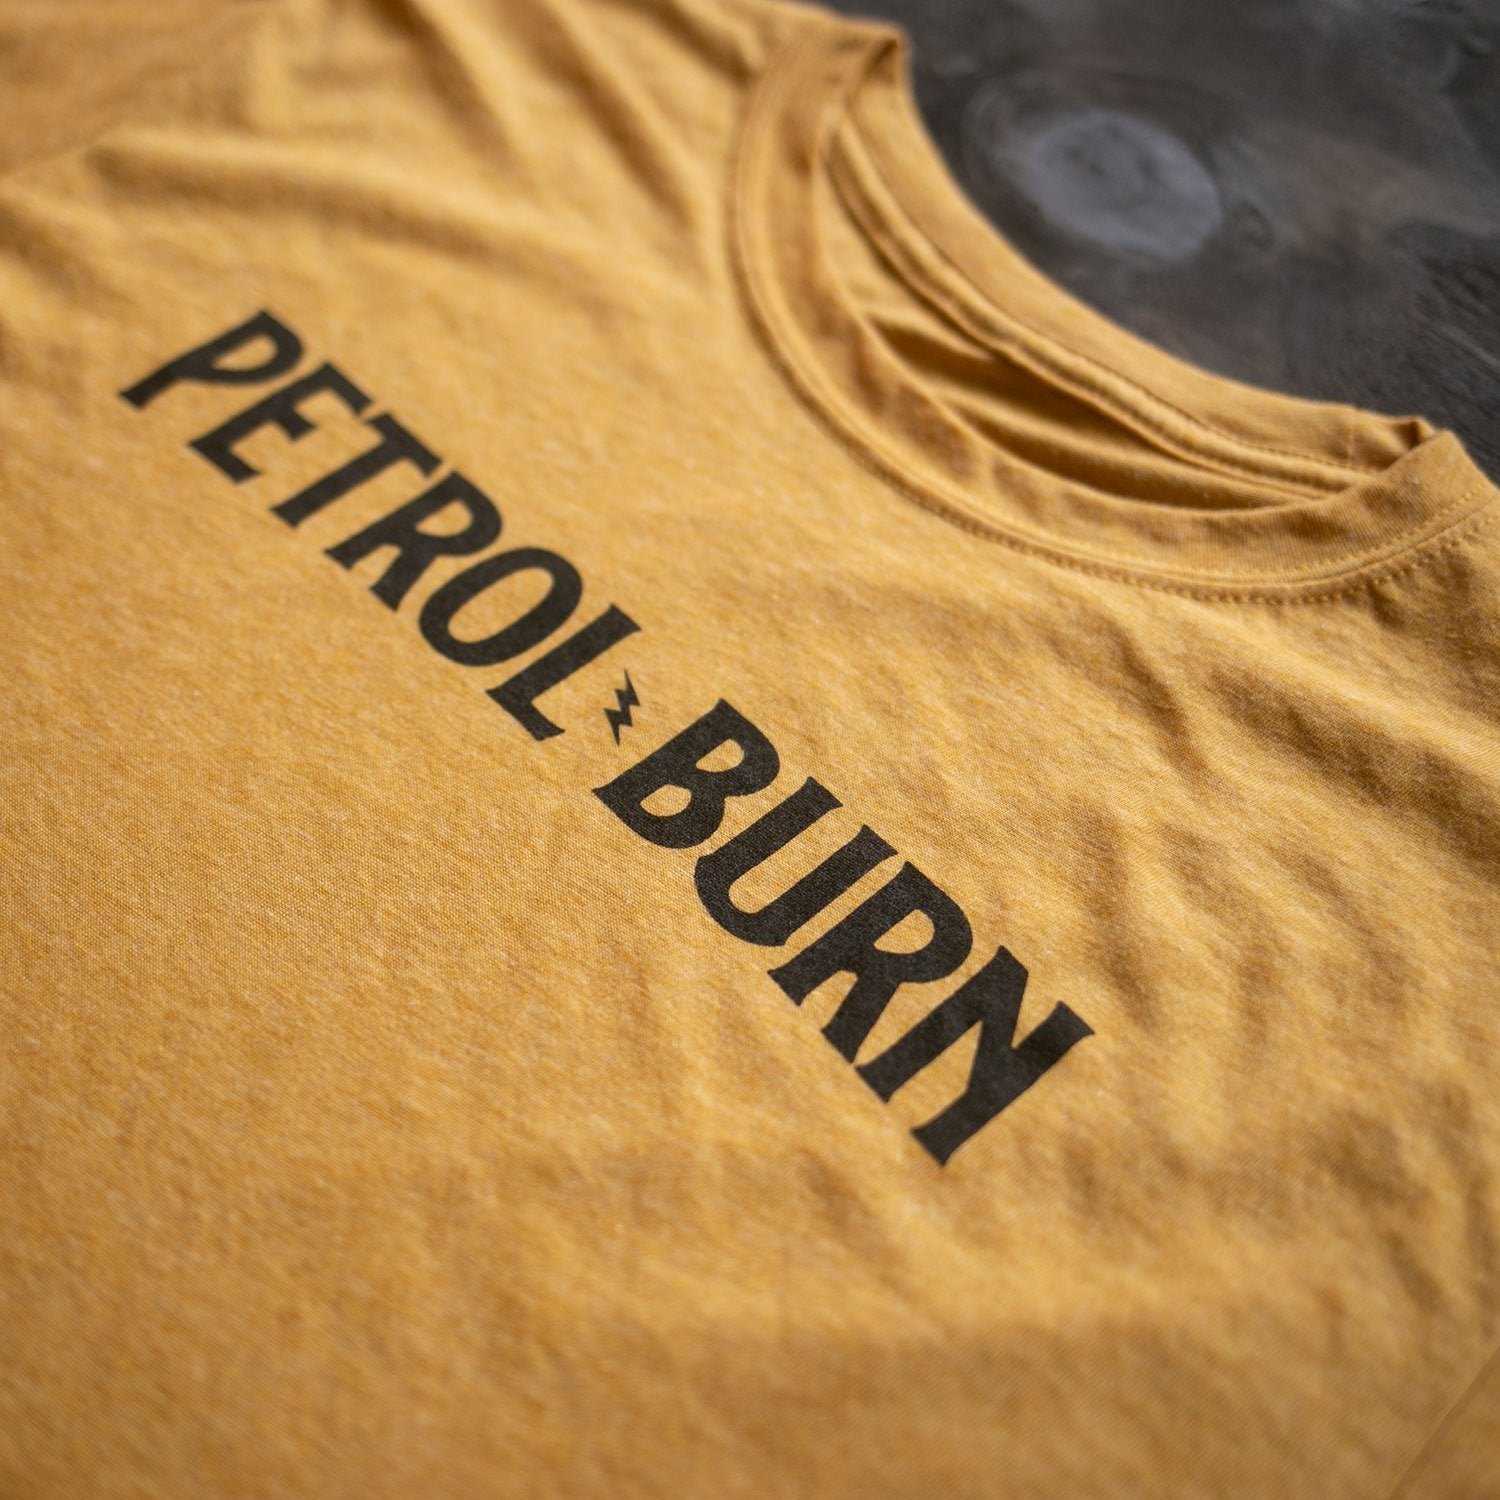 petrol burn chemical fuel additive vintage inspired mens t-shirt